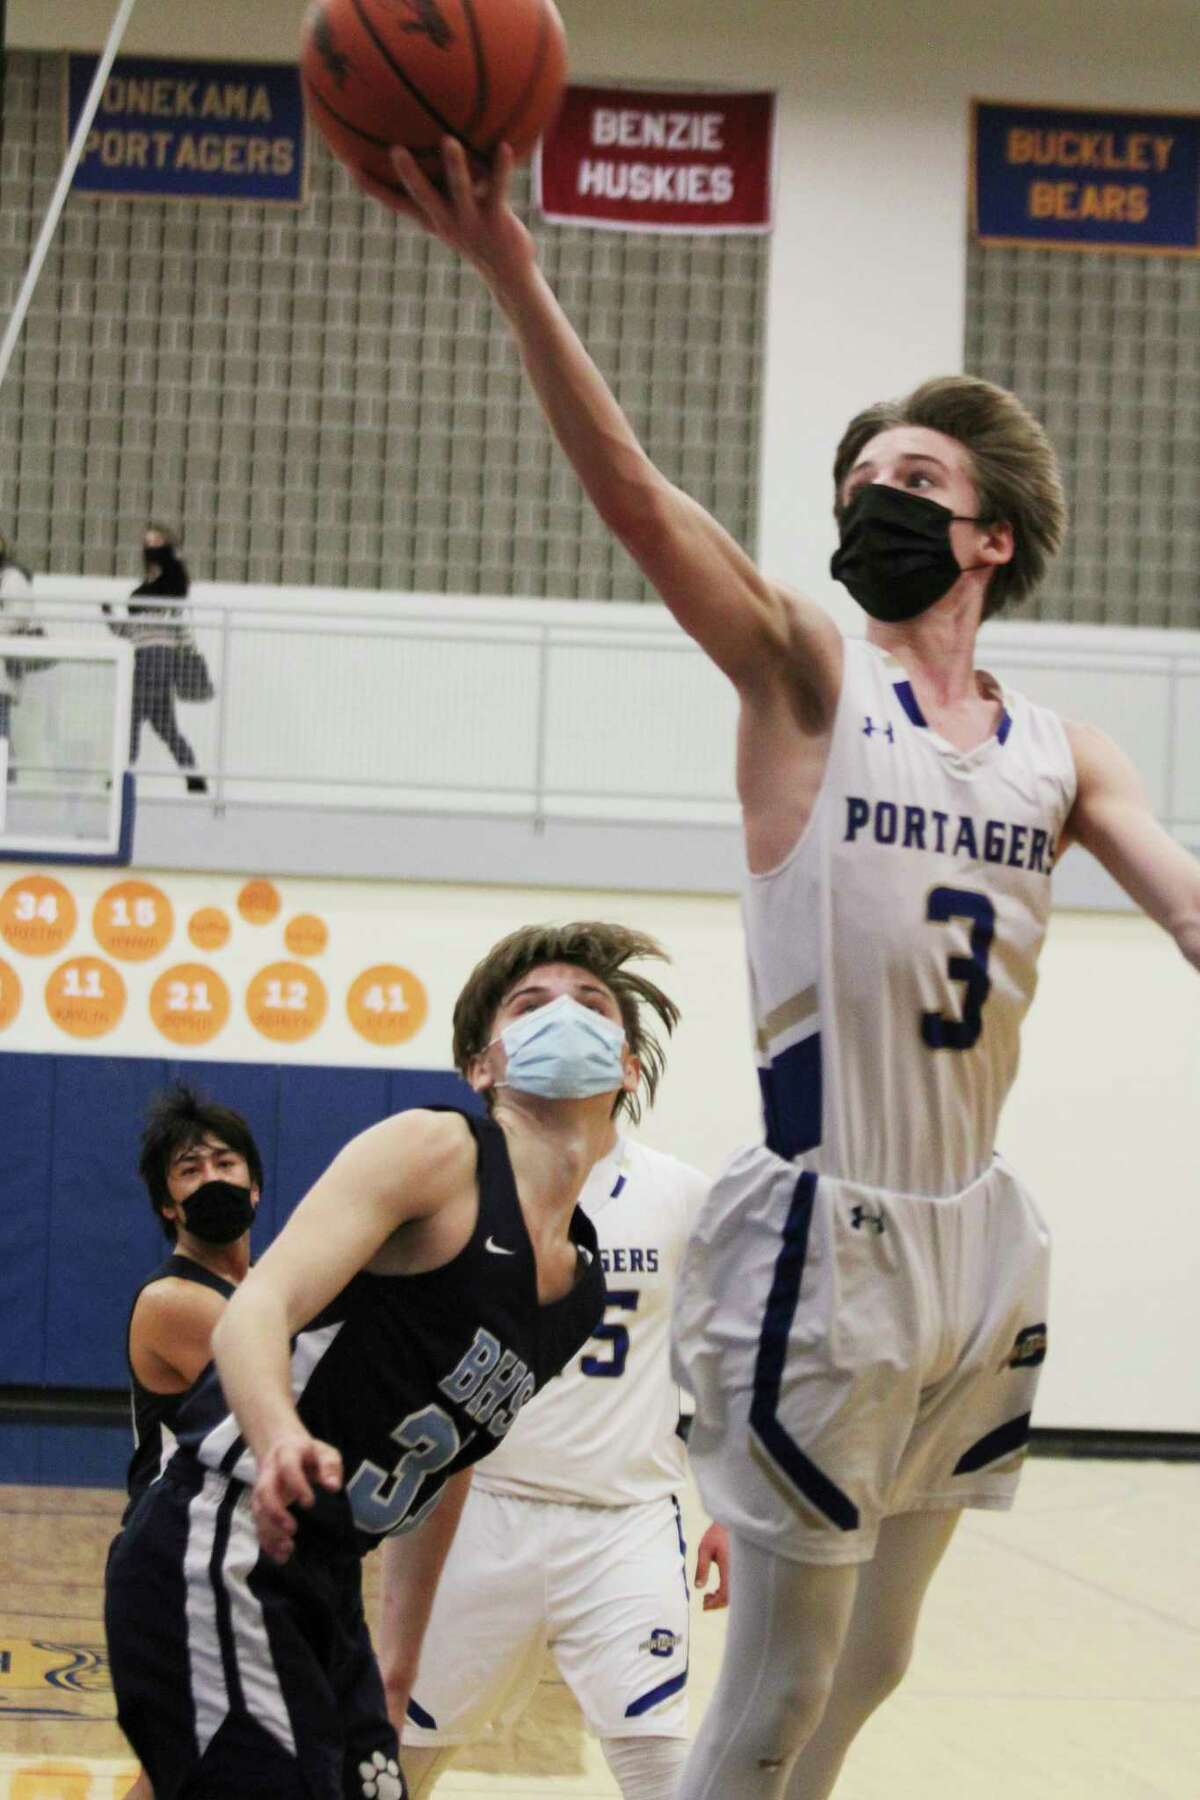 Onekama's Nate Corey eyes a layup during Thursday's district semifinal against Brethren. (Dylan Savela/News Advocate)